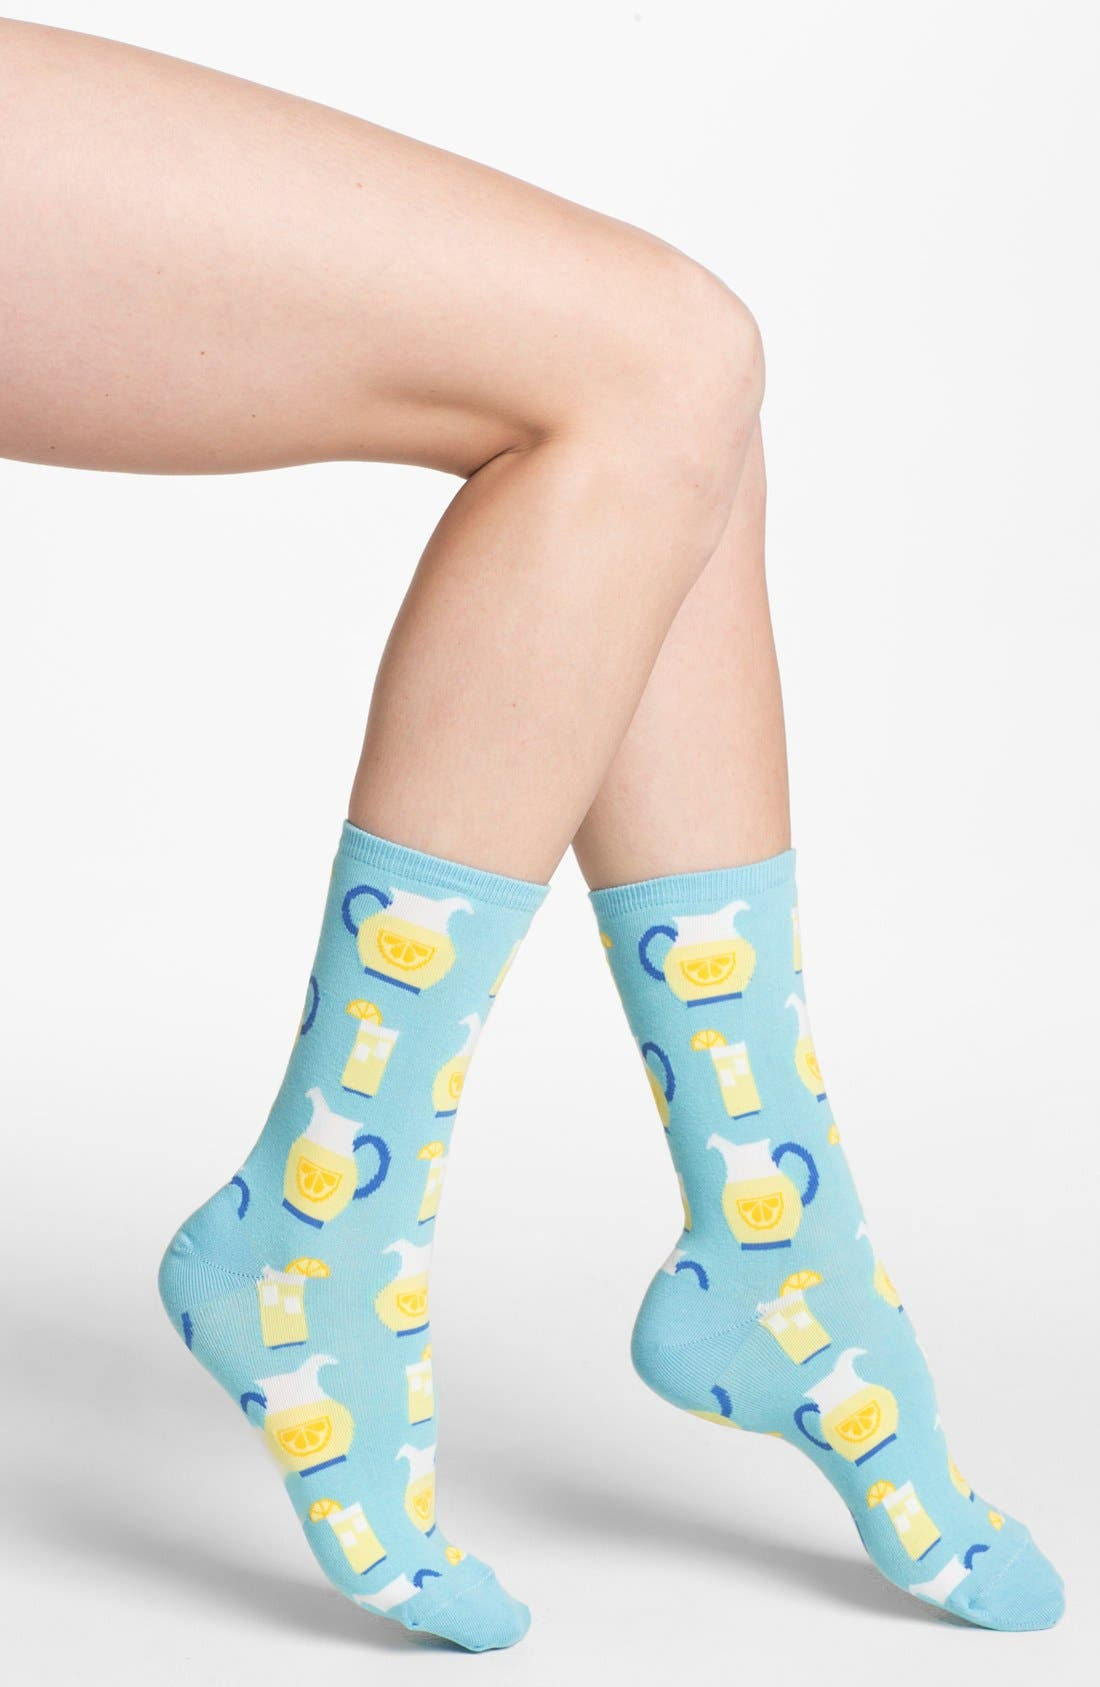 Main Image - Hot Sox 'Lemonade' Socks